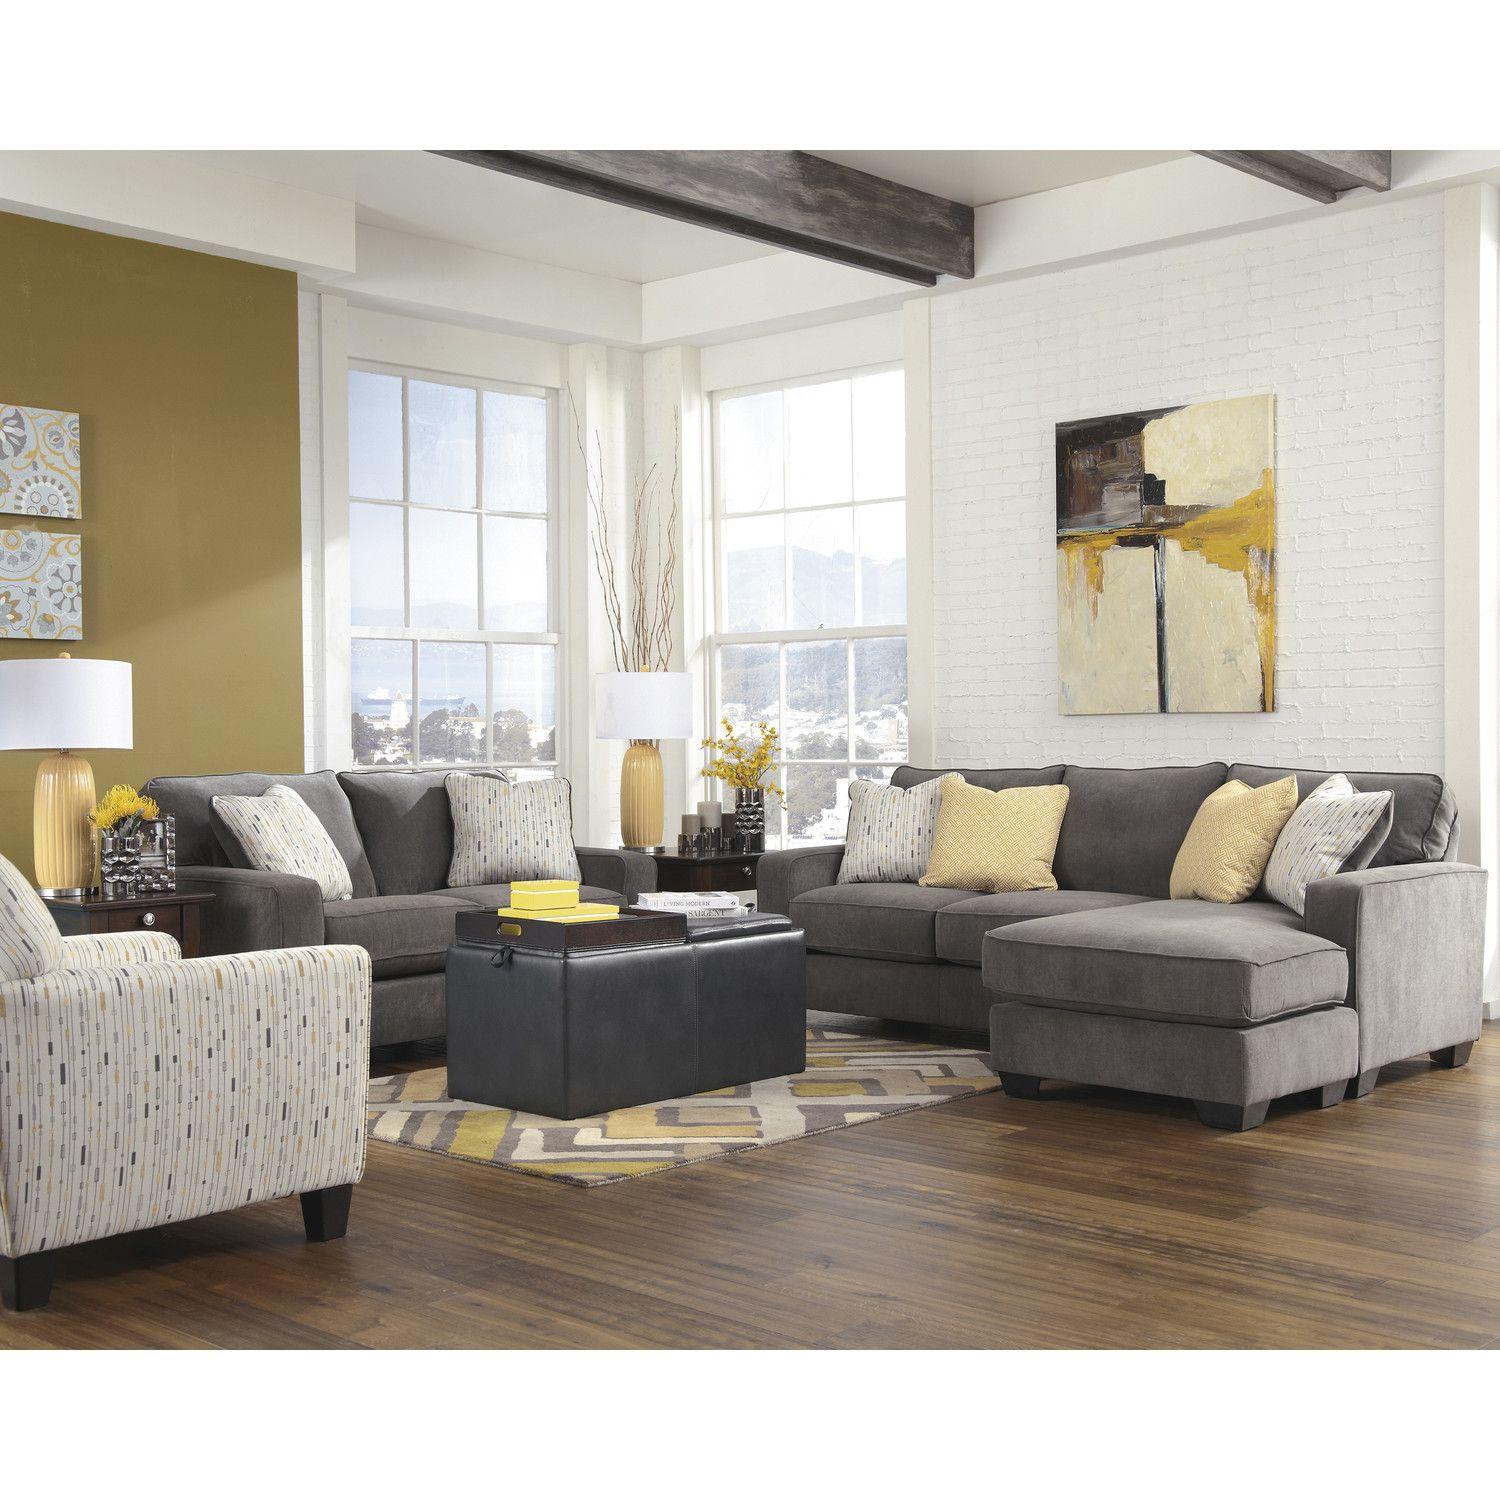 black leather living room furniture sets%0A Room    two sofas